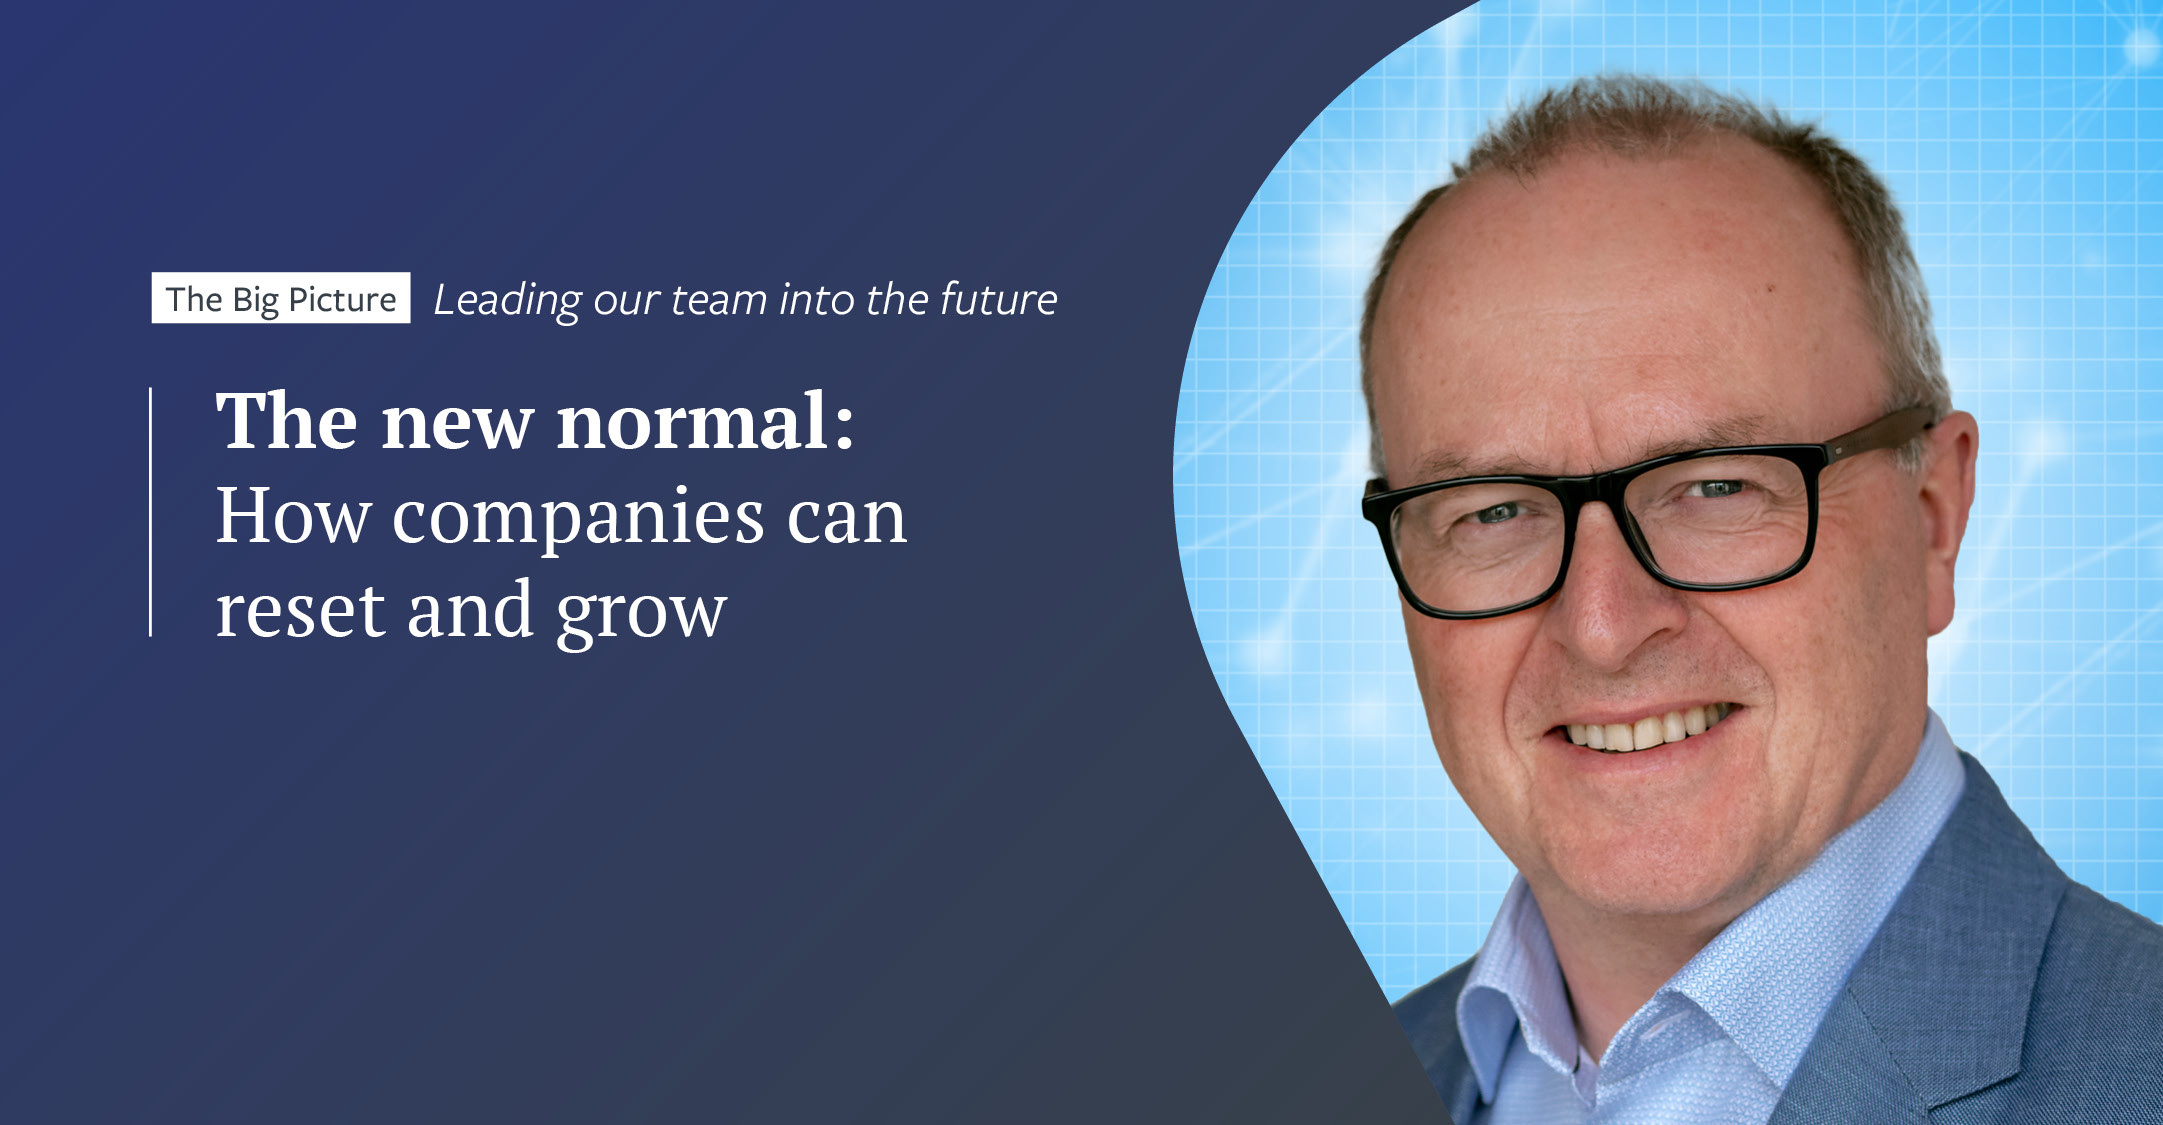 The new normal: how companies can reset and grow